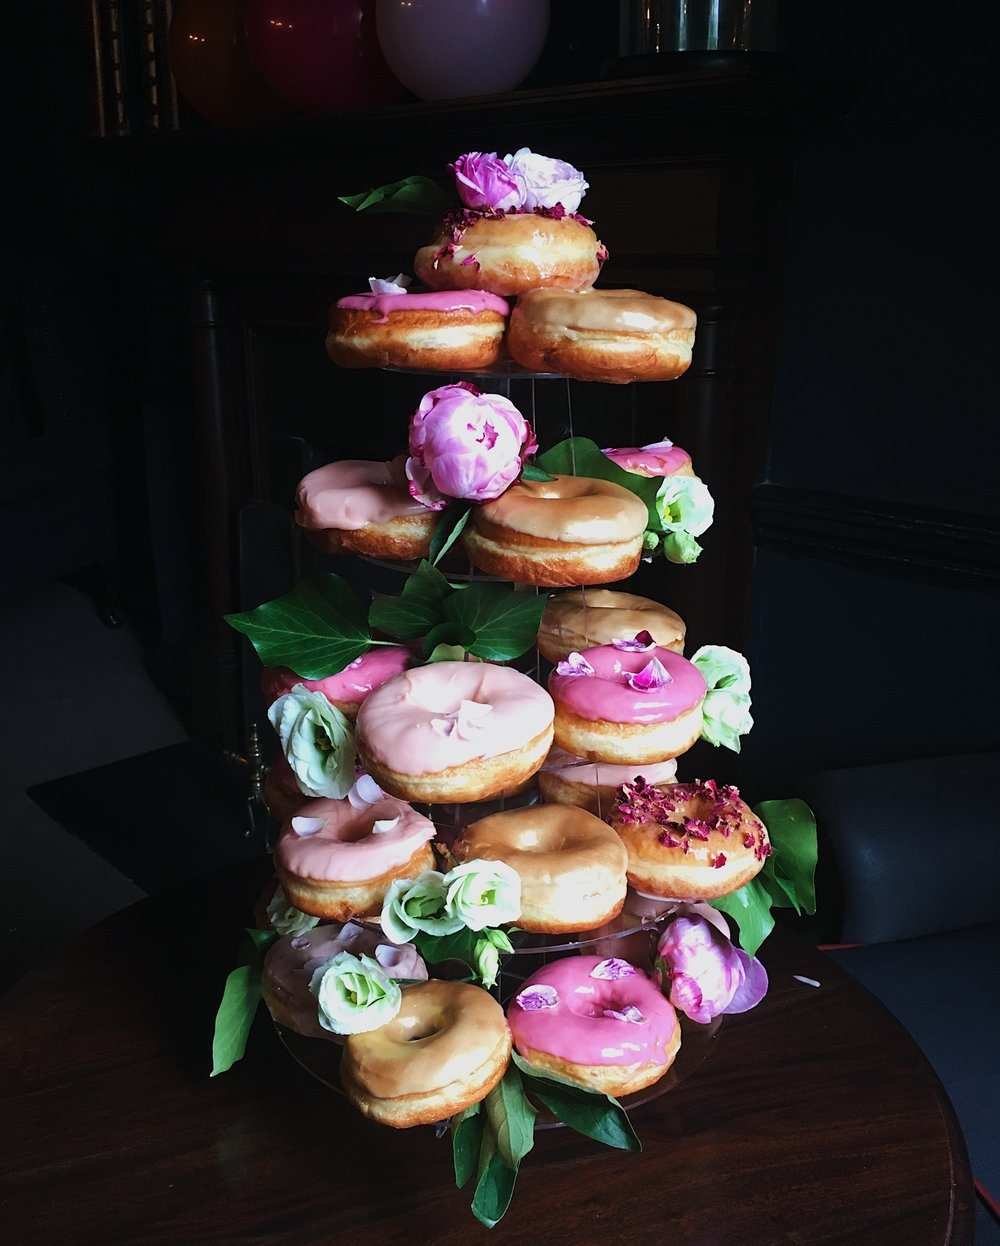 A tower of glazed ring donuts with glaze in different shades of pink.